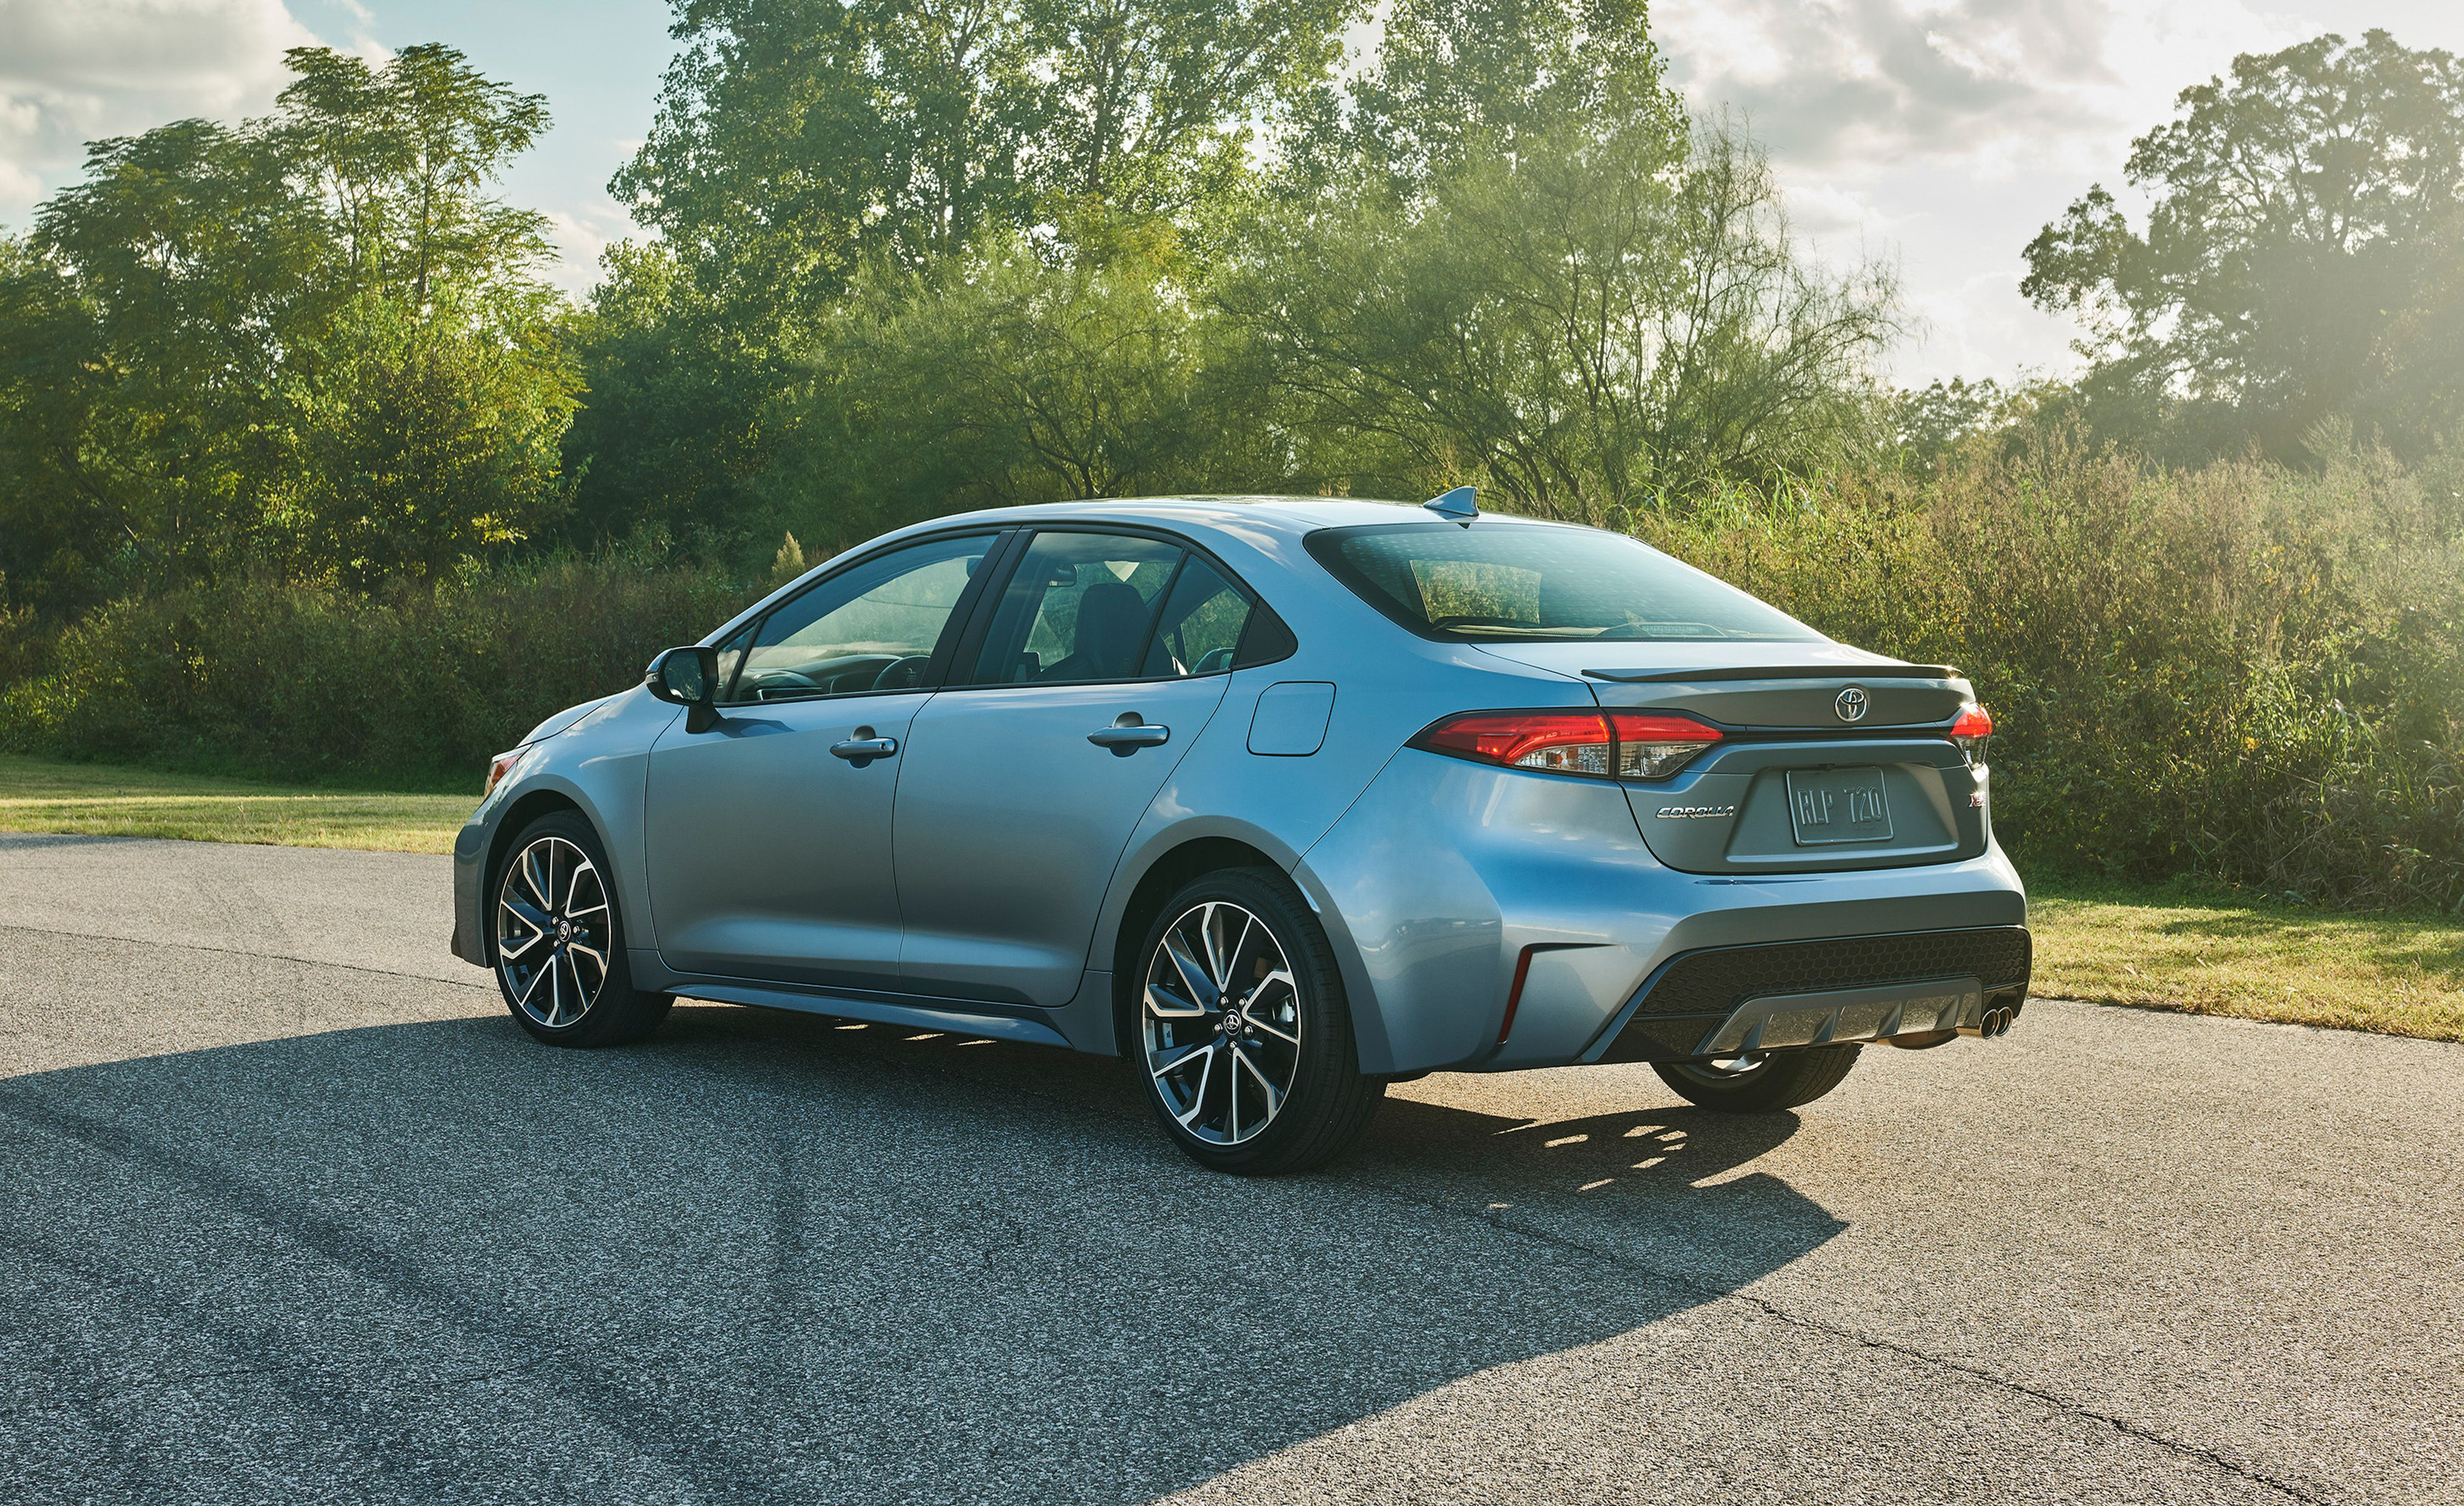 New 2020 Toyota Corolla Sedan Redesigned Compact Car Details Release Date